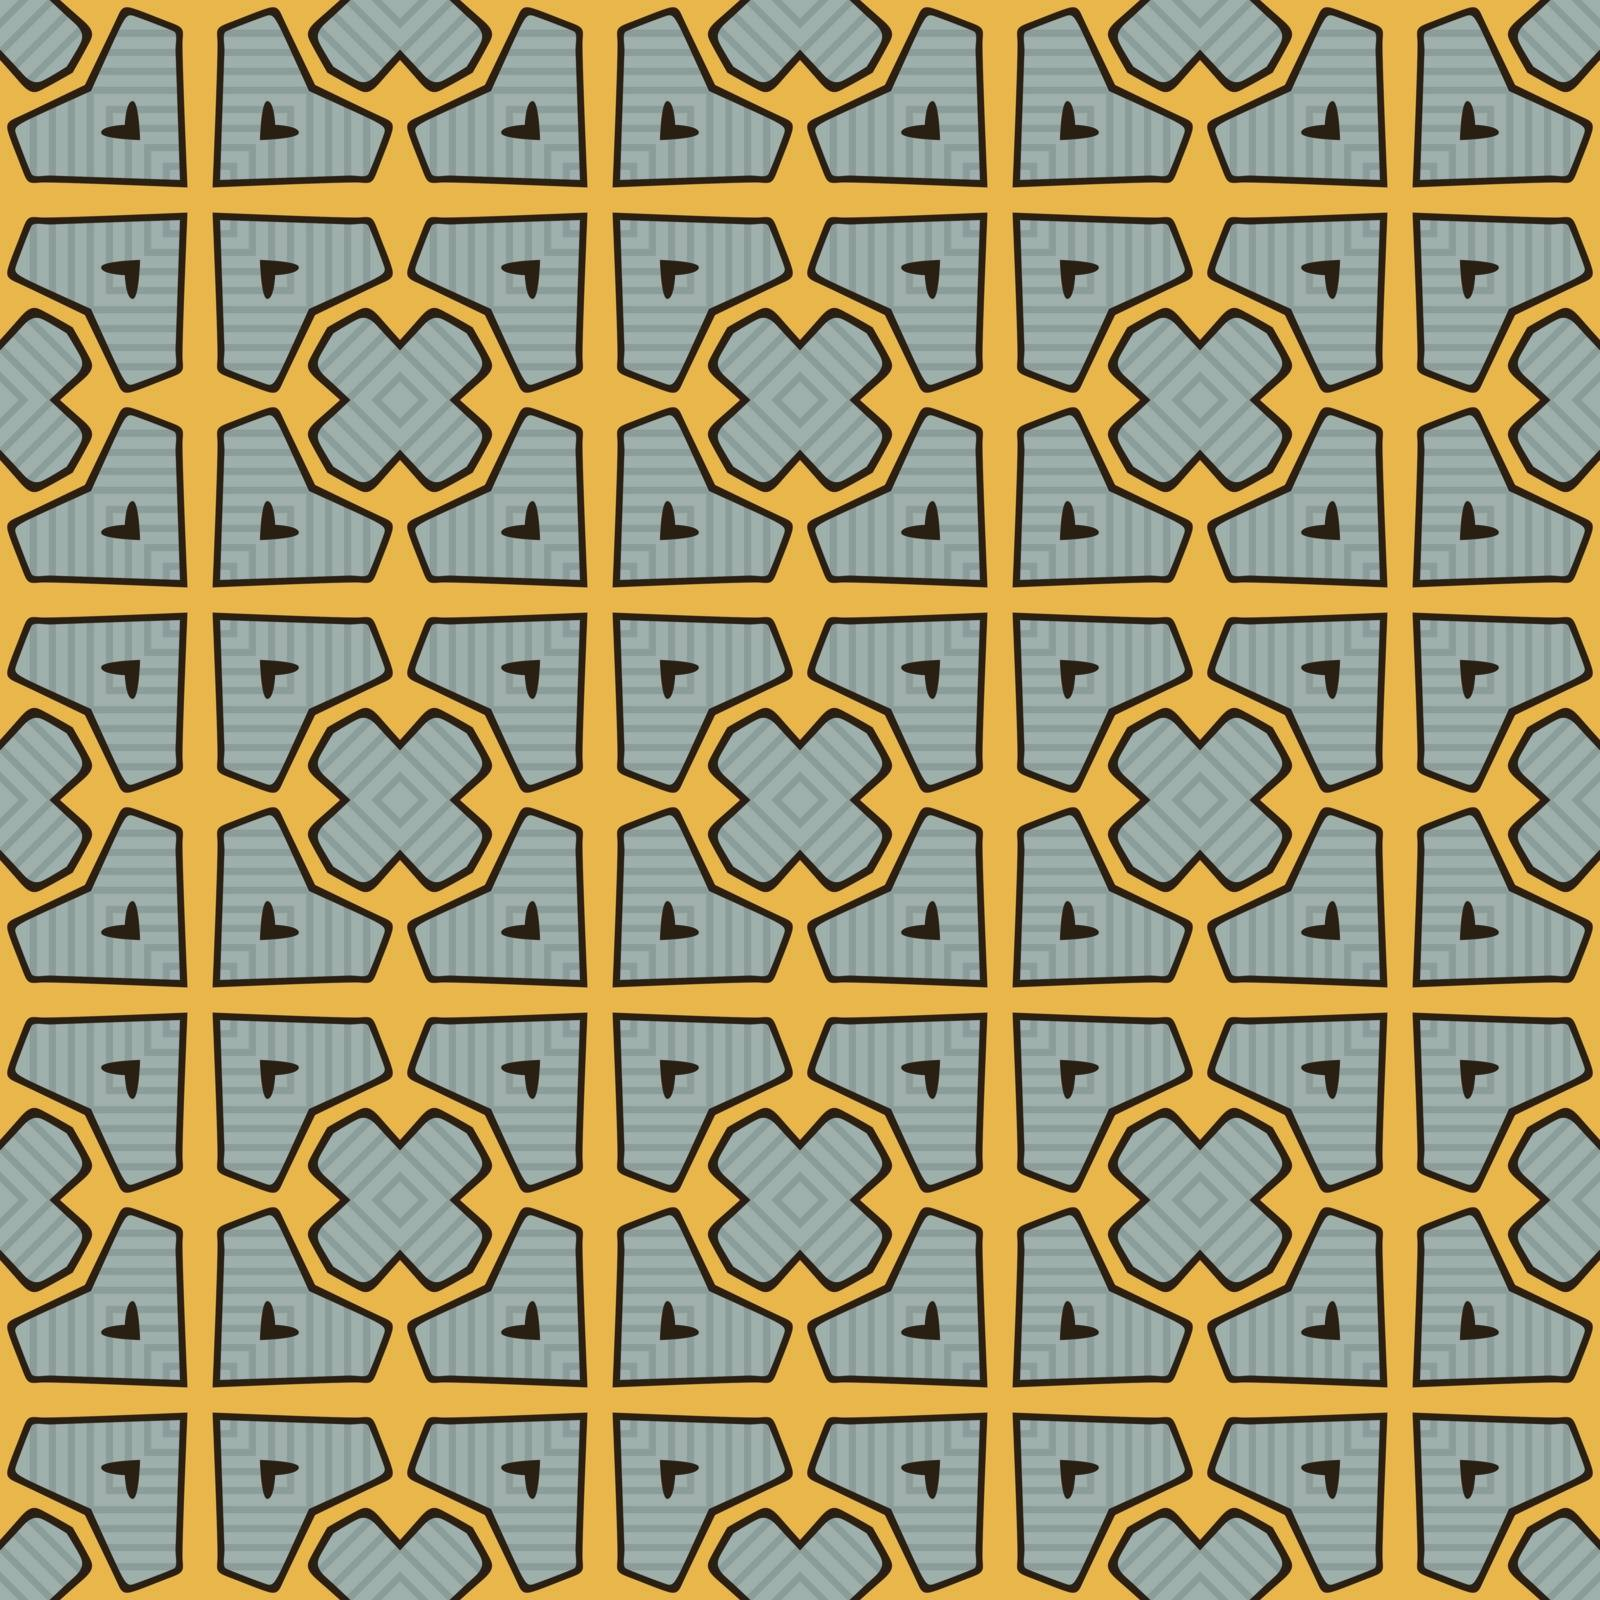 Seamless illustrated pattern made of abstract elements in turquoise, orange and black